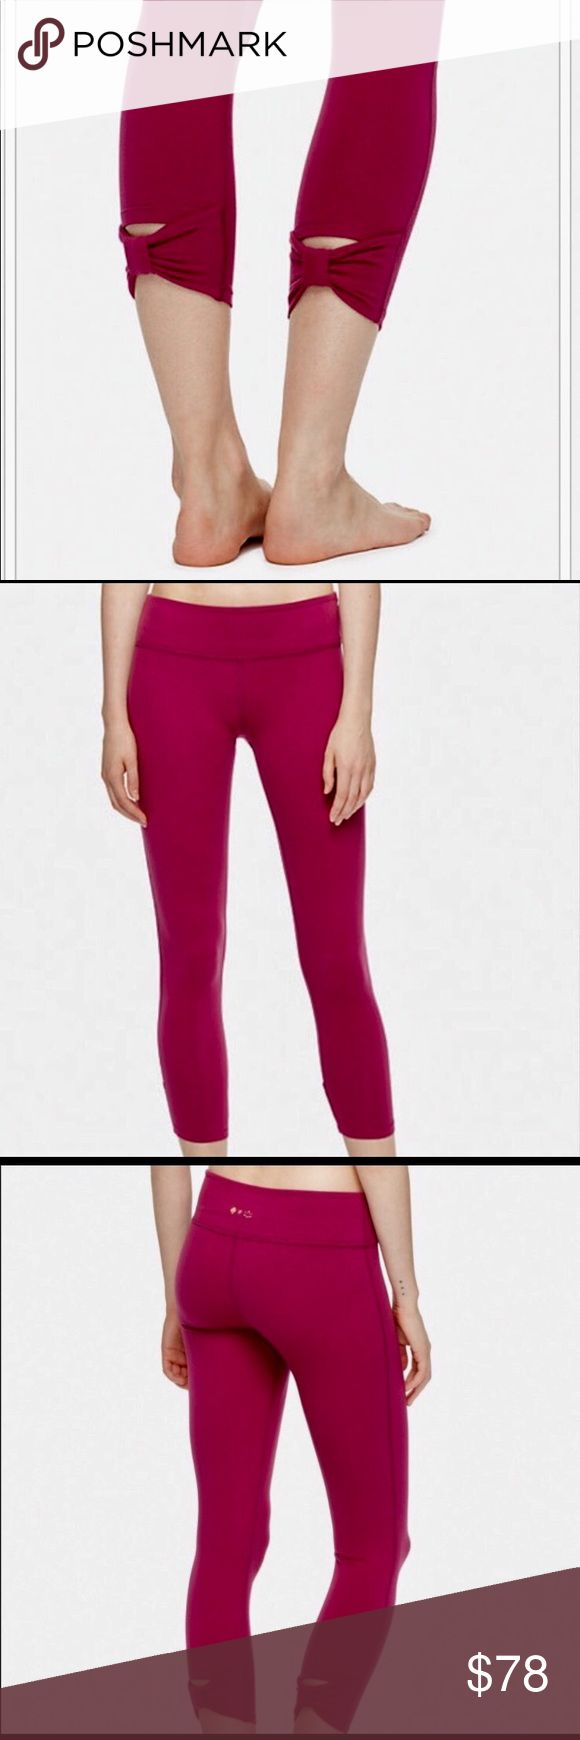 Kate Spade for Beyond Yoga Yoga Athletic Leggins Merlot/Magenta ColorWonderful collaboration with Kate Spade and Beyond Yoga High End Yoga Barre Leggings. Adorable signature Bow at back of legs. Supplex is an ultra soft moisture wicking fabric!! Provides generous stretch and full recovery maintaining full color after every wash! Gentle cycle and only air dried. Ideal for even the most vigorous workouts. 90% Cotton 10%Lycra 4 way stretch!! Quick Drying Kate Spade Pants Leggings